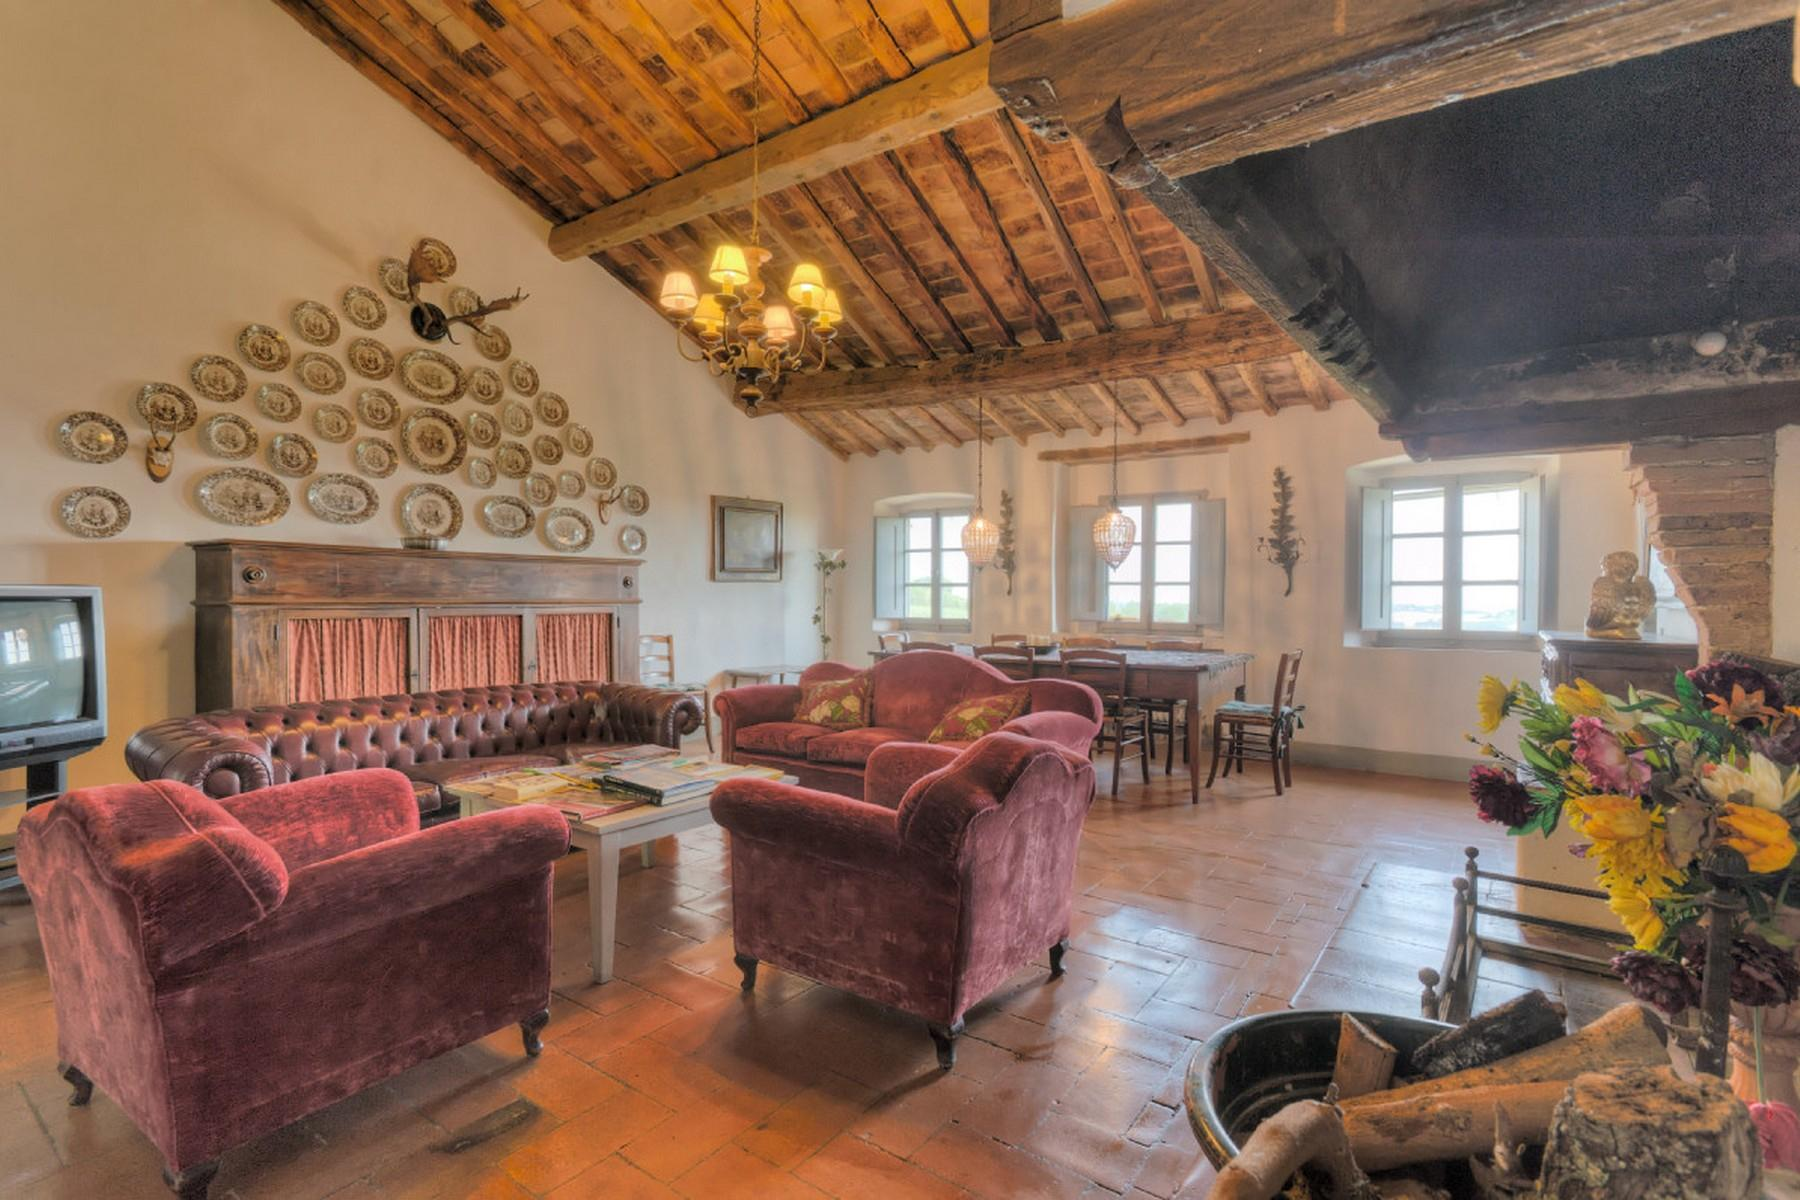 State-of-the-art rustic villa set in Florentine Chianti - 6